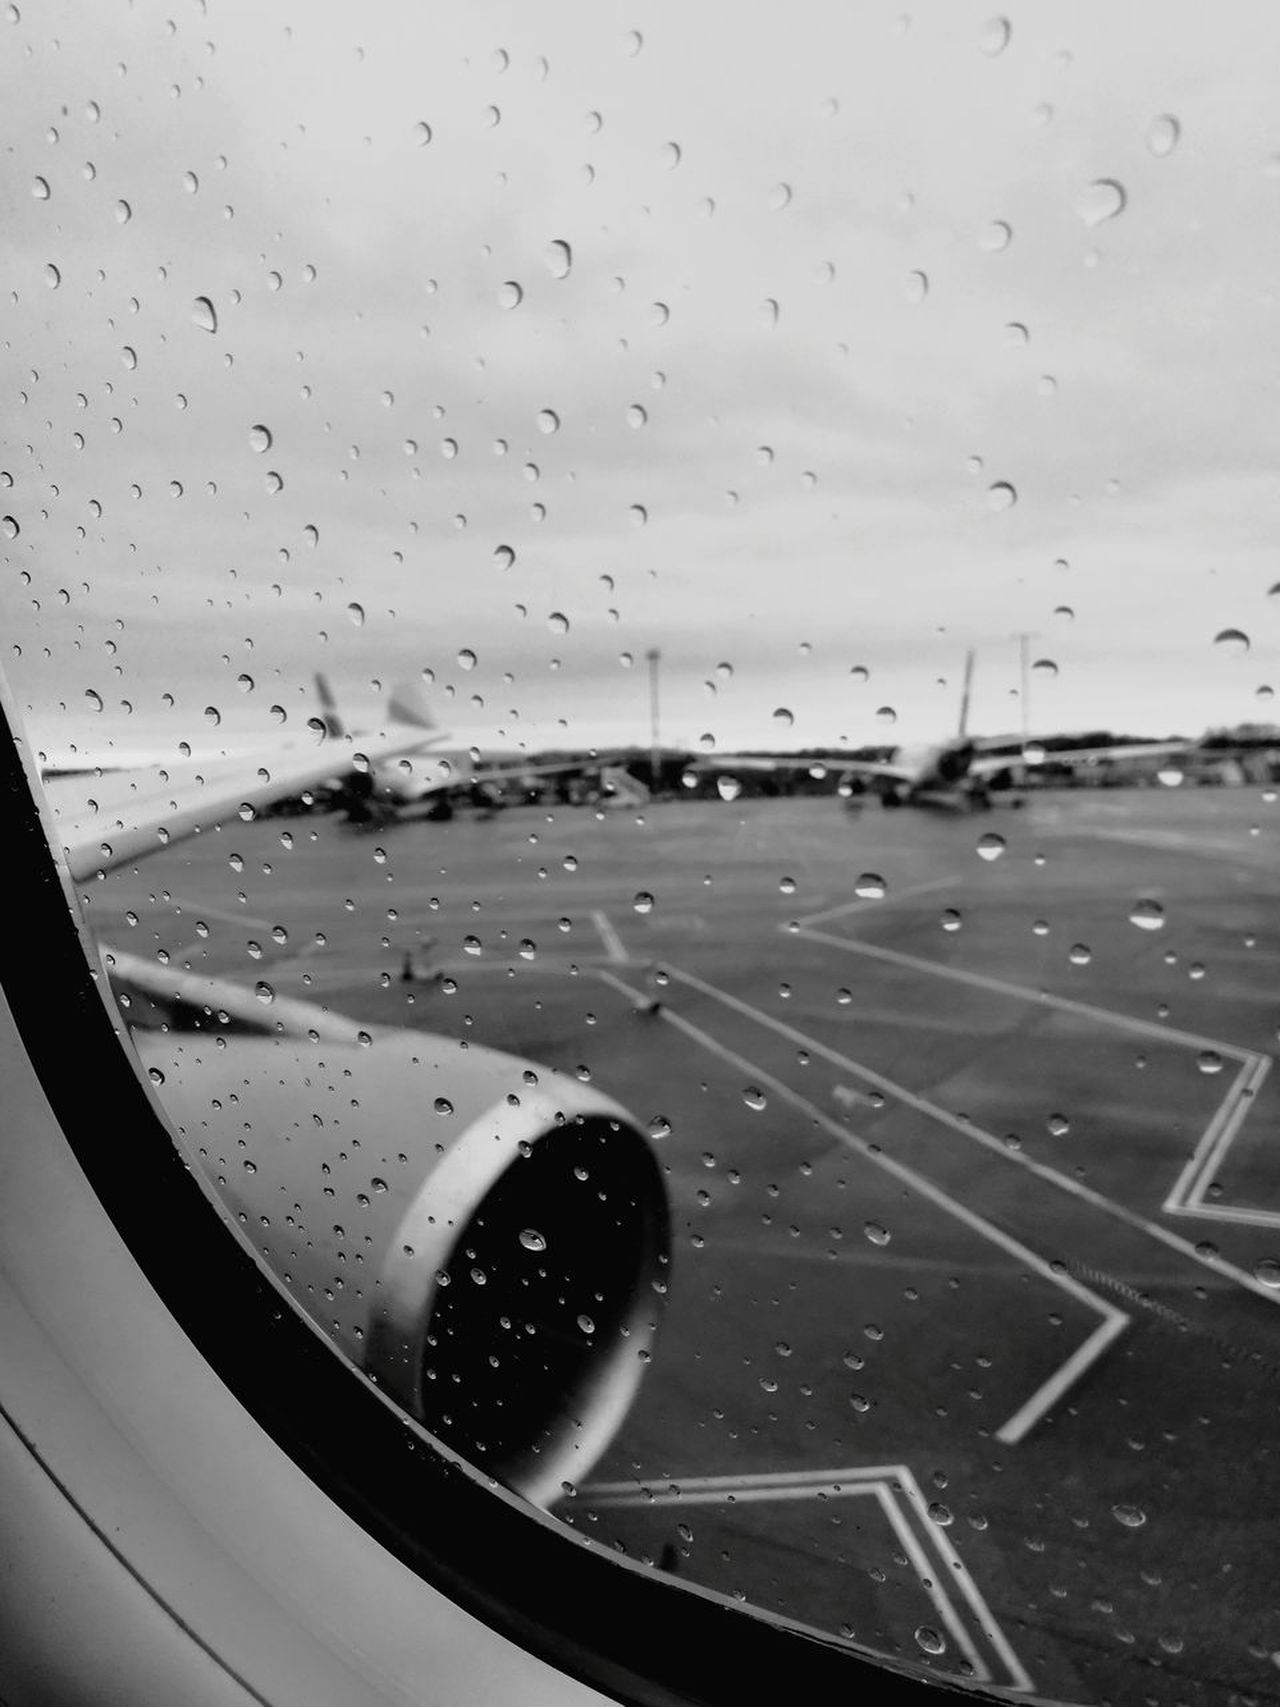 Transportation Airport Airplane Travel Window Airport Runway No People Day Sky Air Vehicle Close-up Outdoors Runway Passenger Boarding Bridge Rainy Day Rainy Window Say Goodbye Fly Away Goodbye Sad Day Sad Farewell Travel